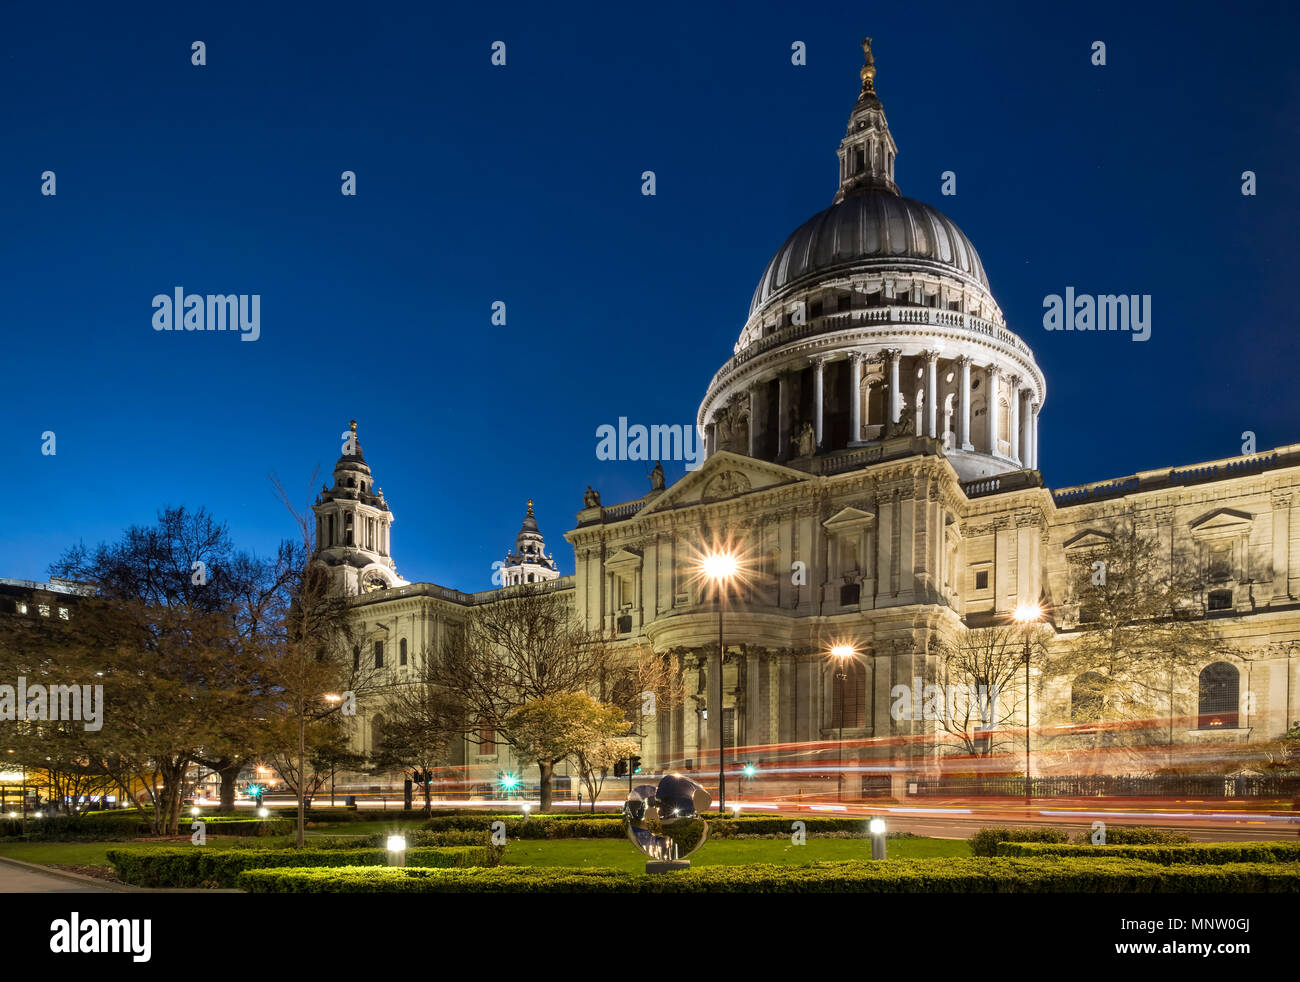 St Pauls Cathedral at night, London, England, UK - Stock Image